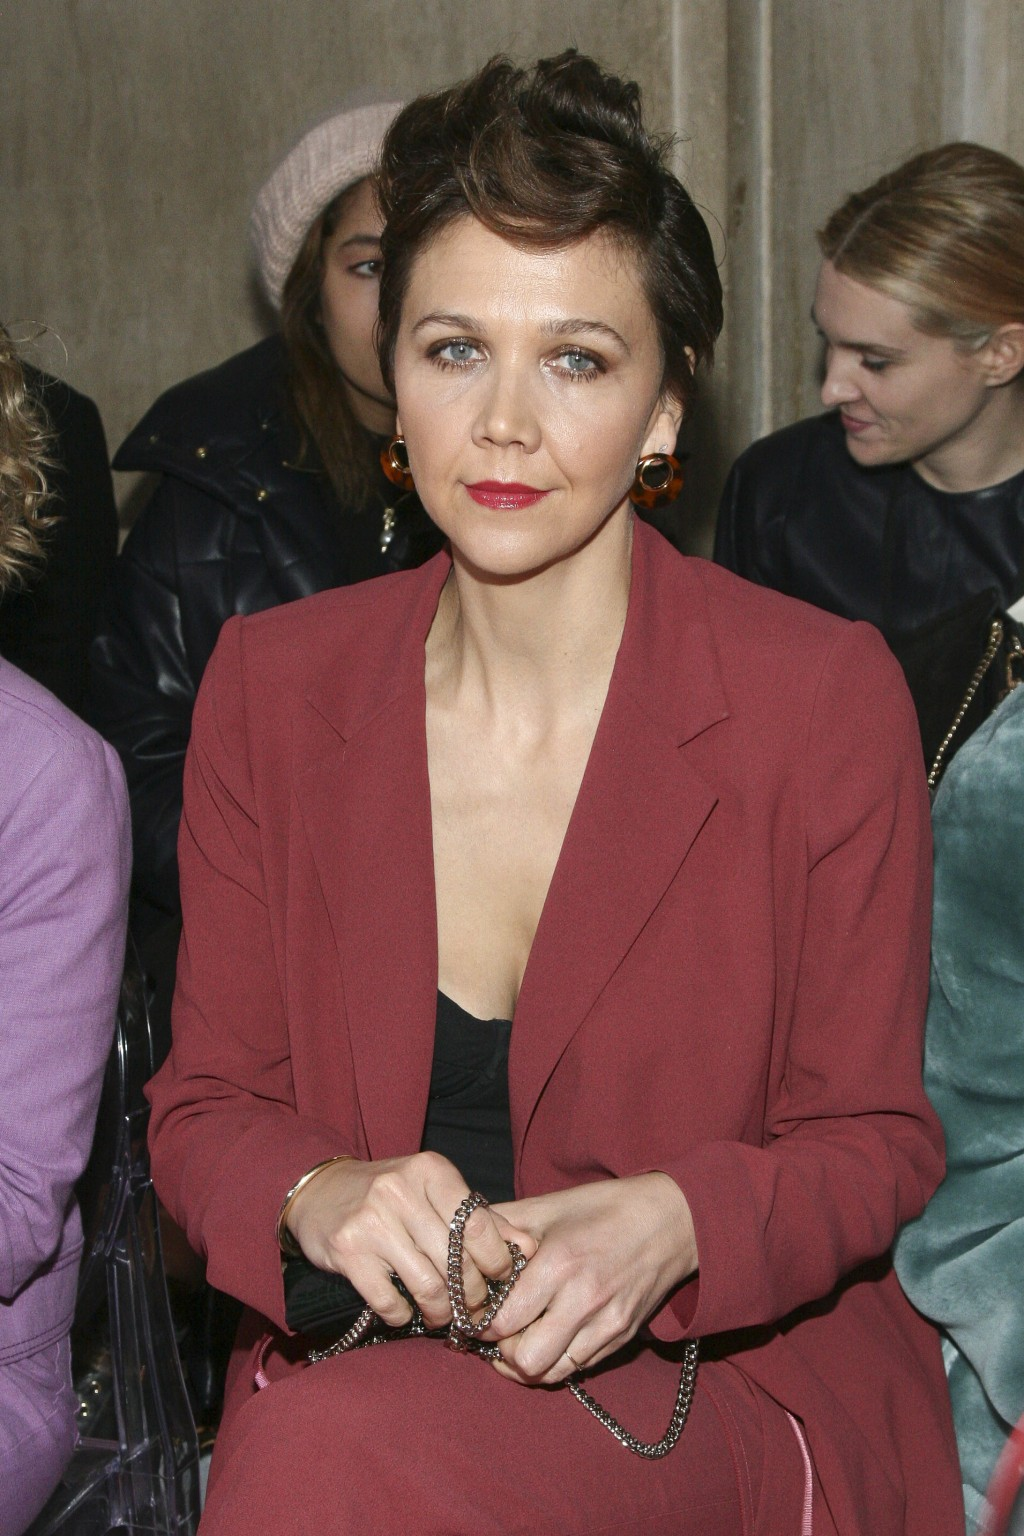 Maggie Gyllenhaal attends the NYFW Fall/Winter 2019 Kate Spade fashion show at the Cipriani's on Friday, Feb. 8, 2019, in New York. (Photo by Andy Kro